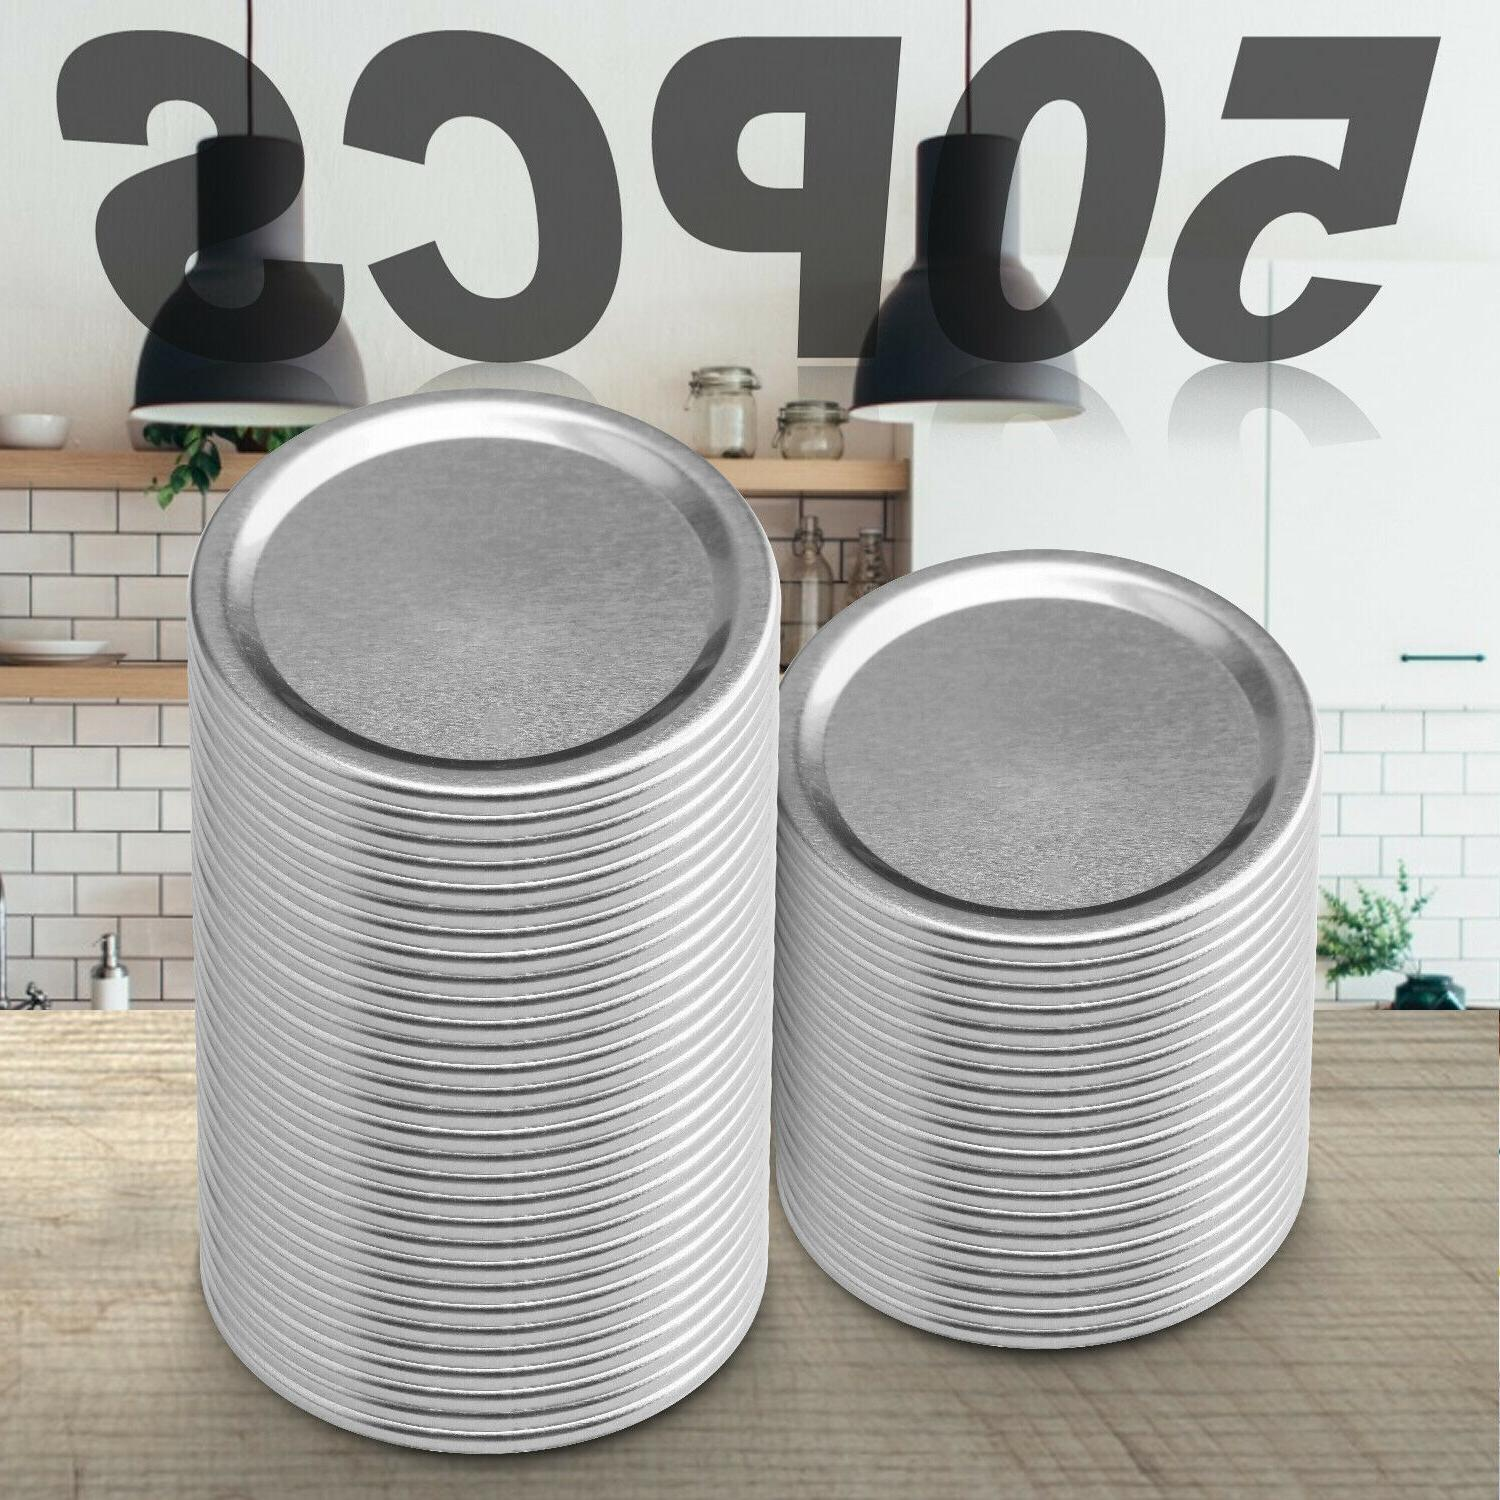 8in1 can lid opener safety manual opener